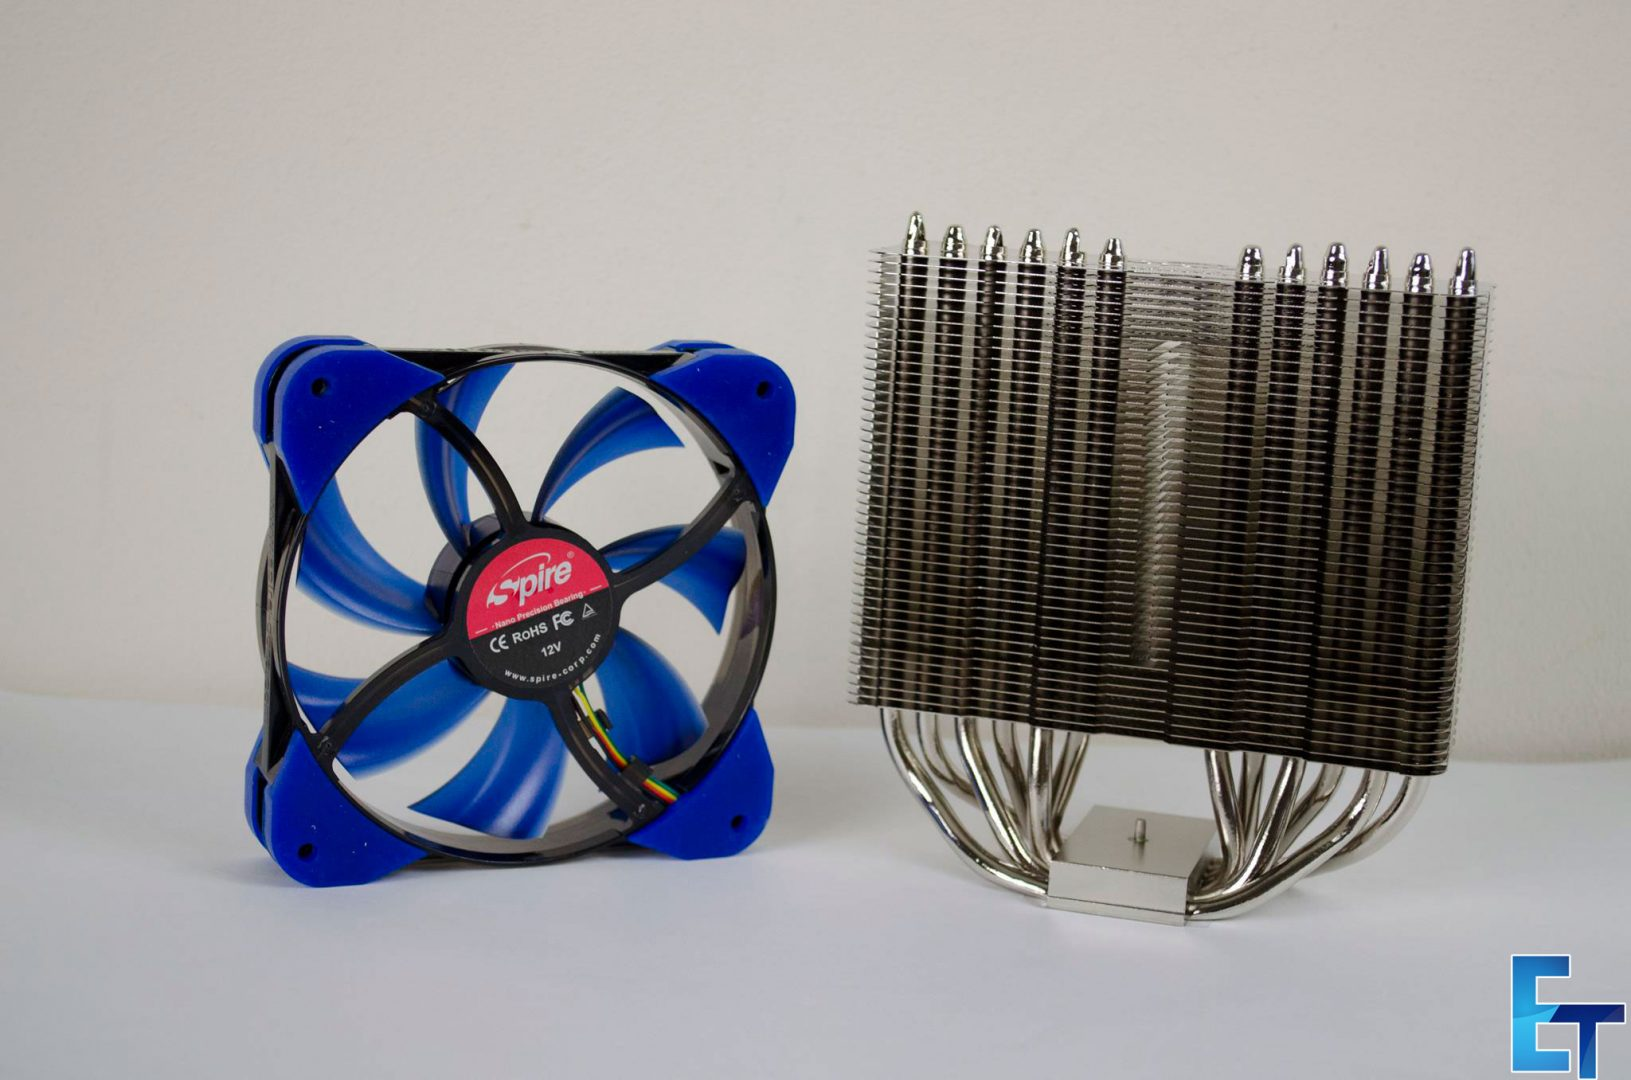 Spire-CoolGate-2-CPU-cooler-Review_2